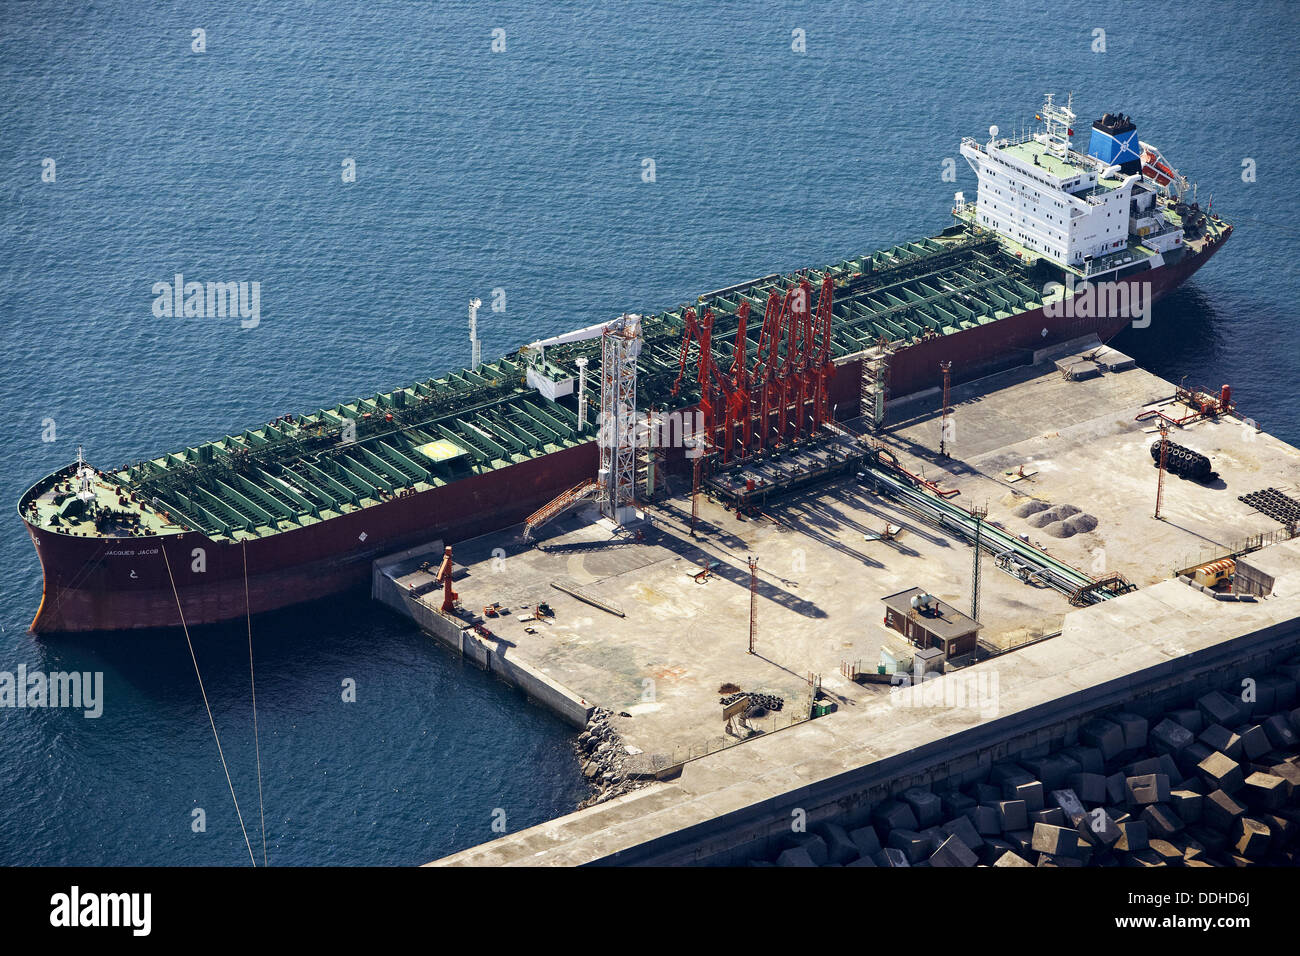 Oil tanker, Port, Bilbao, Biscay, Basque Country, Spain - Stock Image